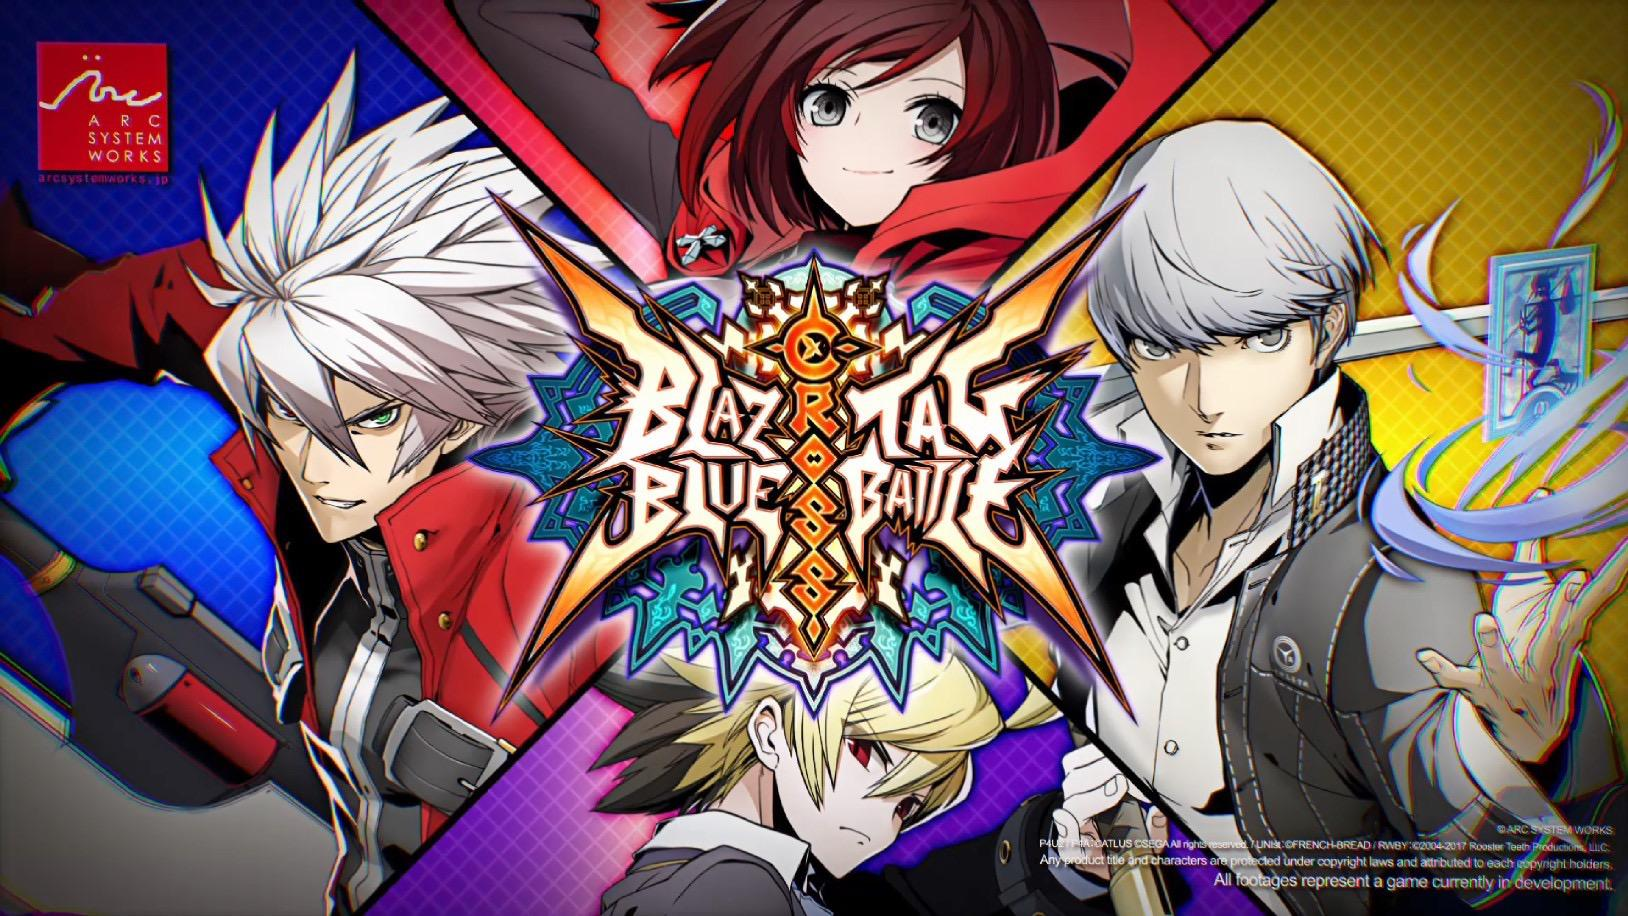 BlazBlue Cross Tag Battle Announced, Crossover Fighter Featuring Persona Characters and More